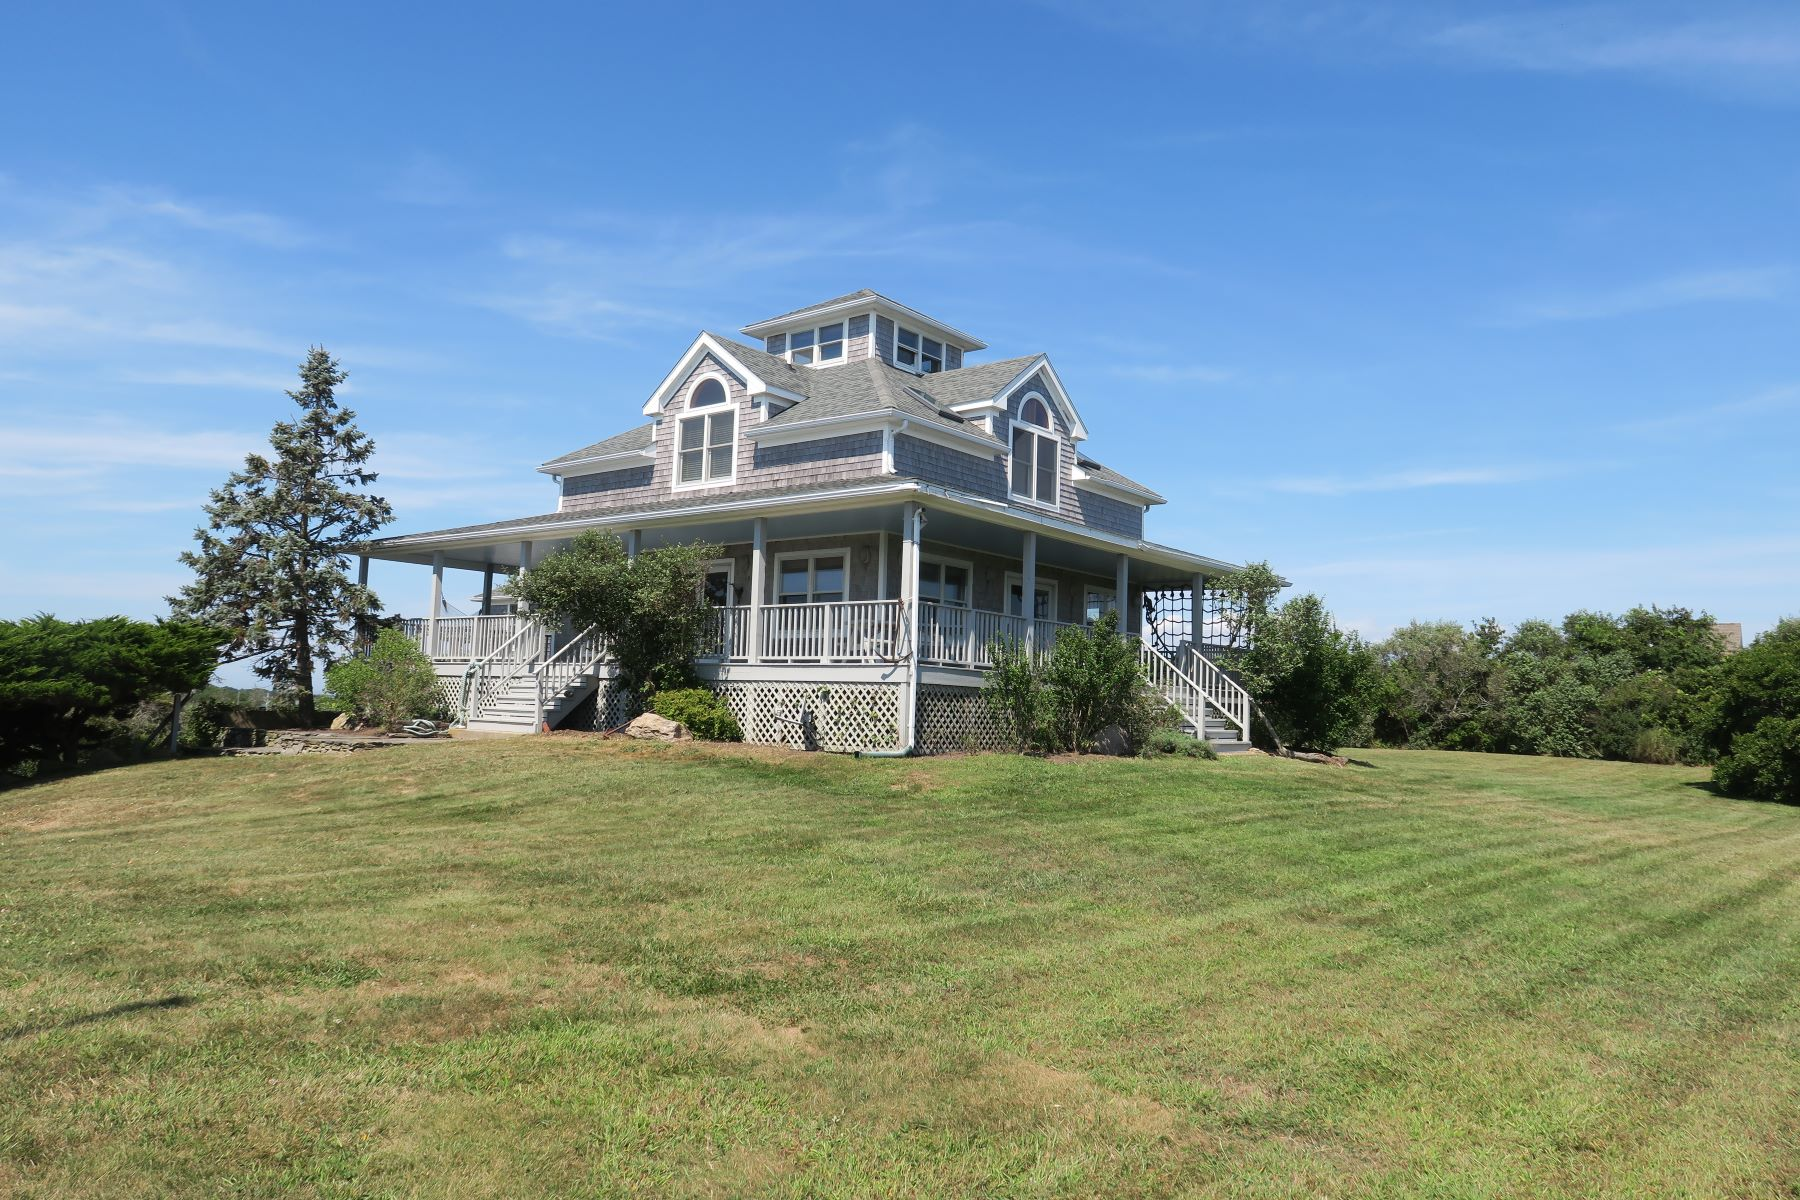 Single Family Homes for Sale at Steps from Crescent Beach 1708 Corn Neck Road PO Box 144 Block Island, Rhode Island 02807 United States